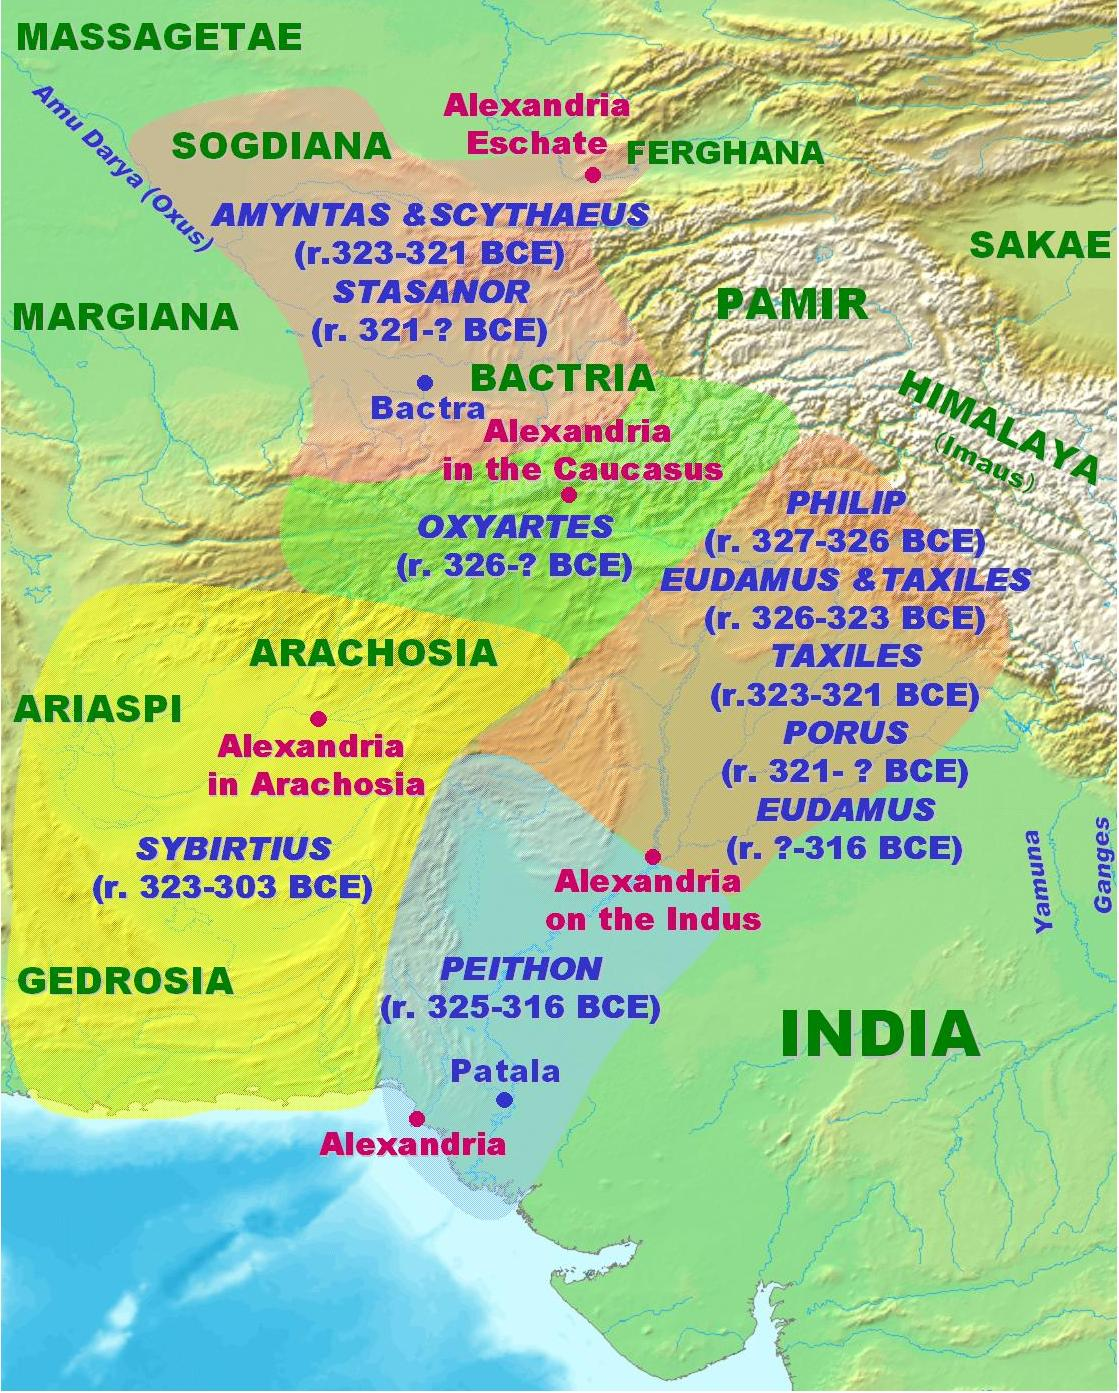 Chandragupta had defeated the remaining Macedonian satrapies in the northwest of the Indian subcontinent by 317 BCE.